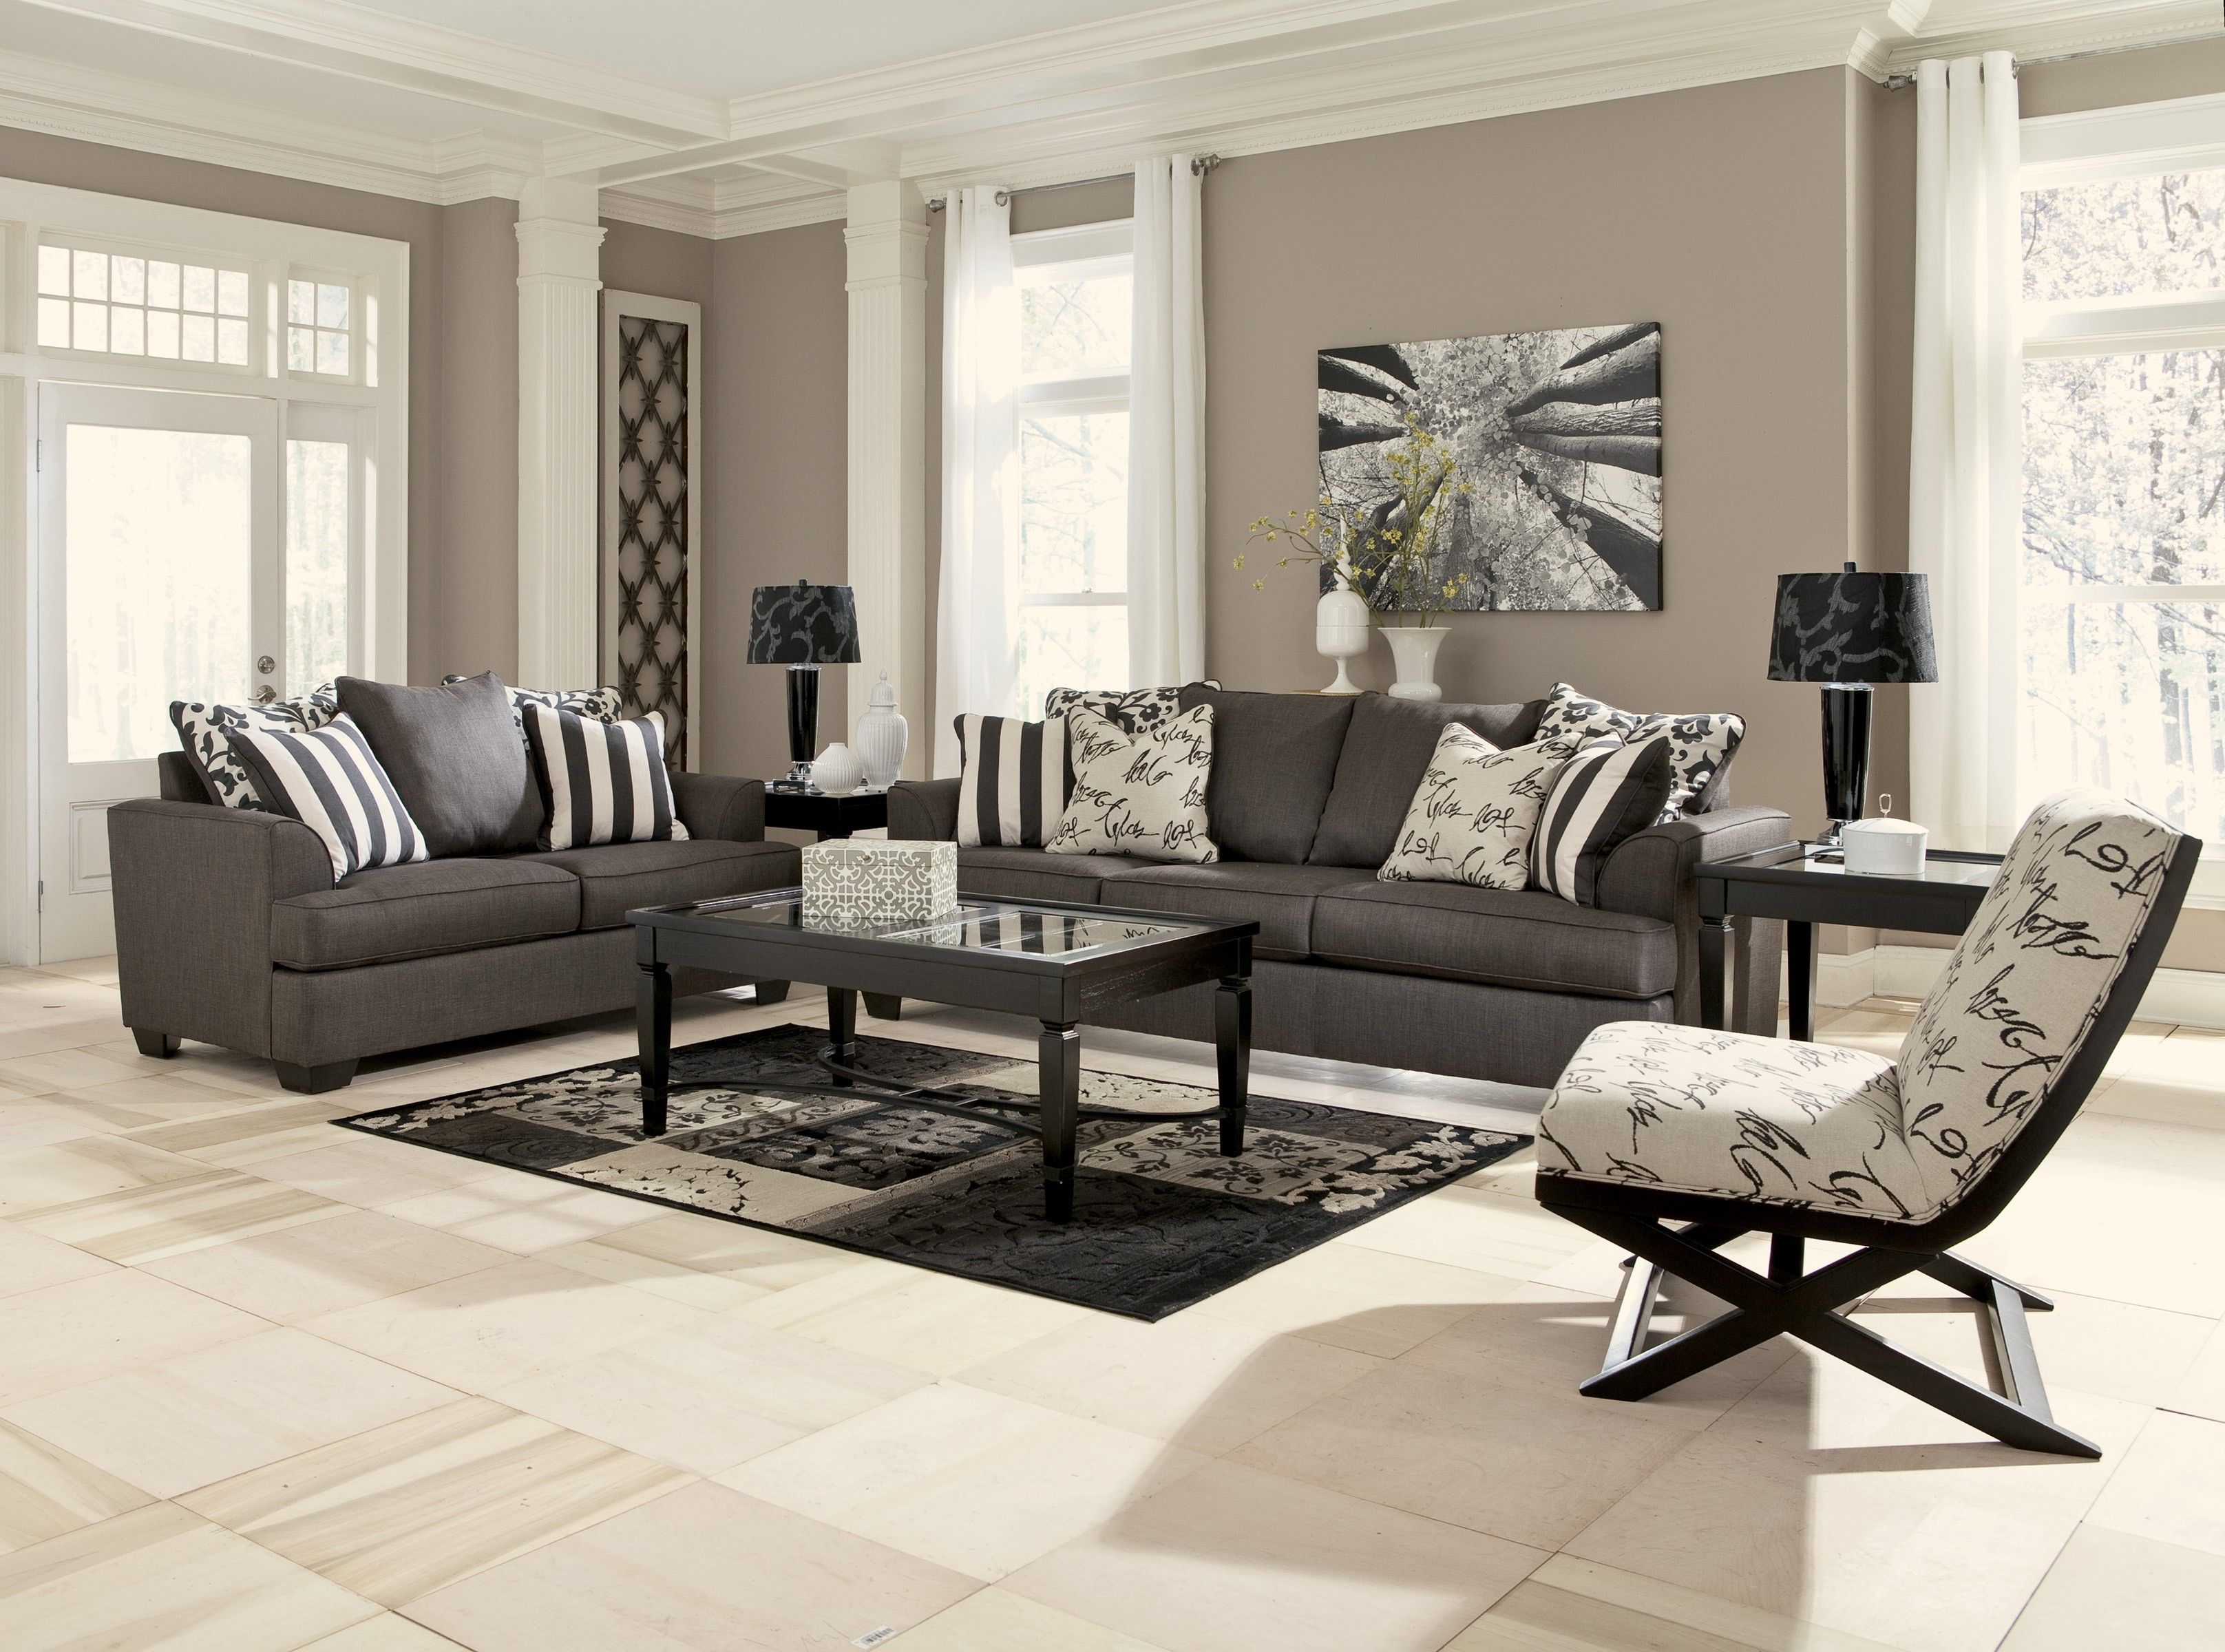 Modern Furniture For Living Room Contemporary Charcoal Living Room Love Our New Living Room